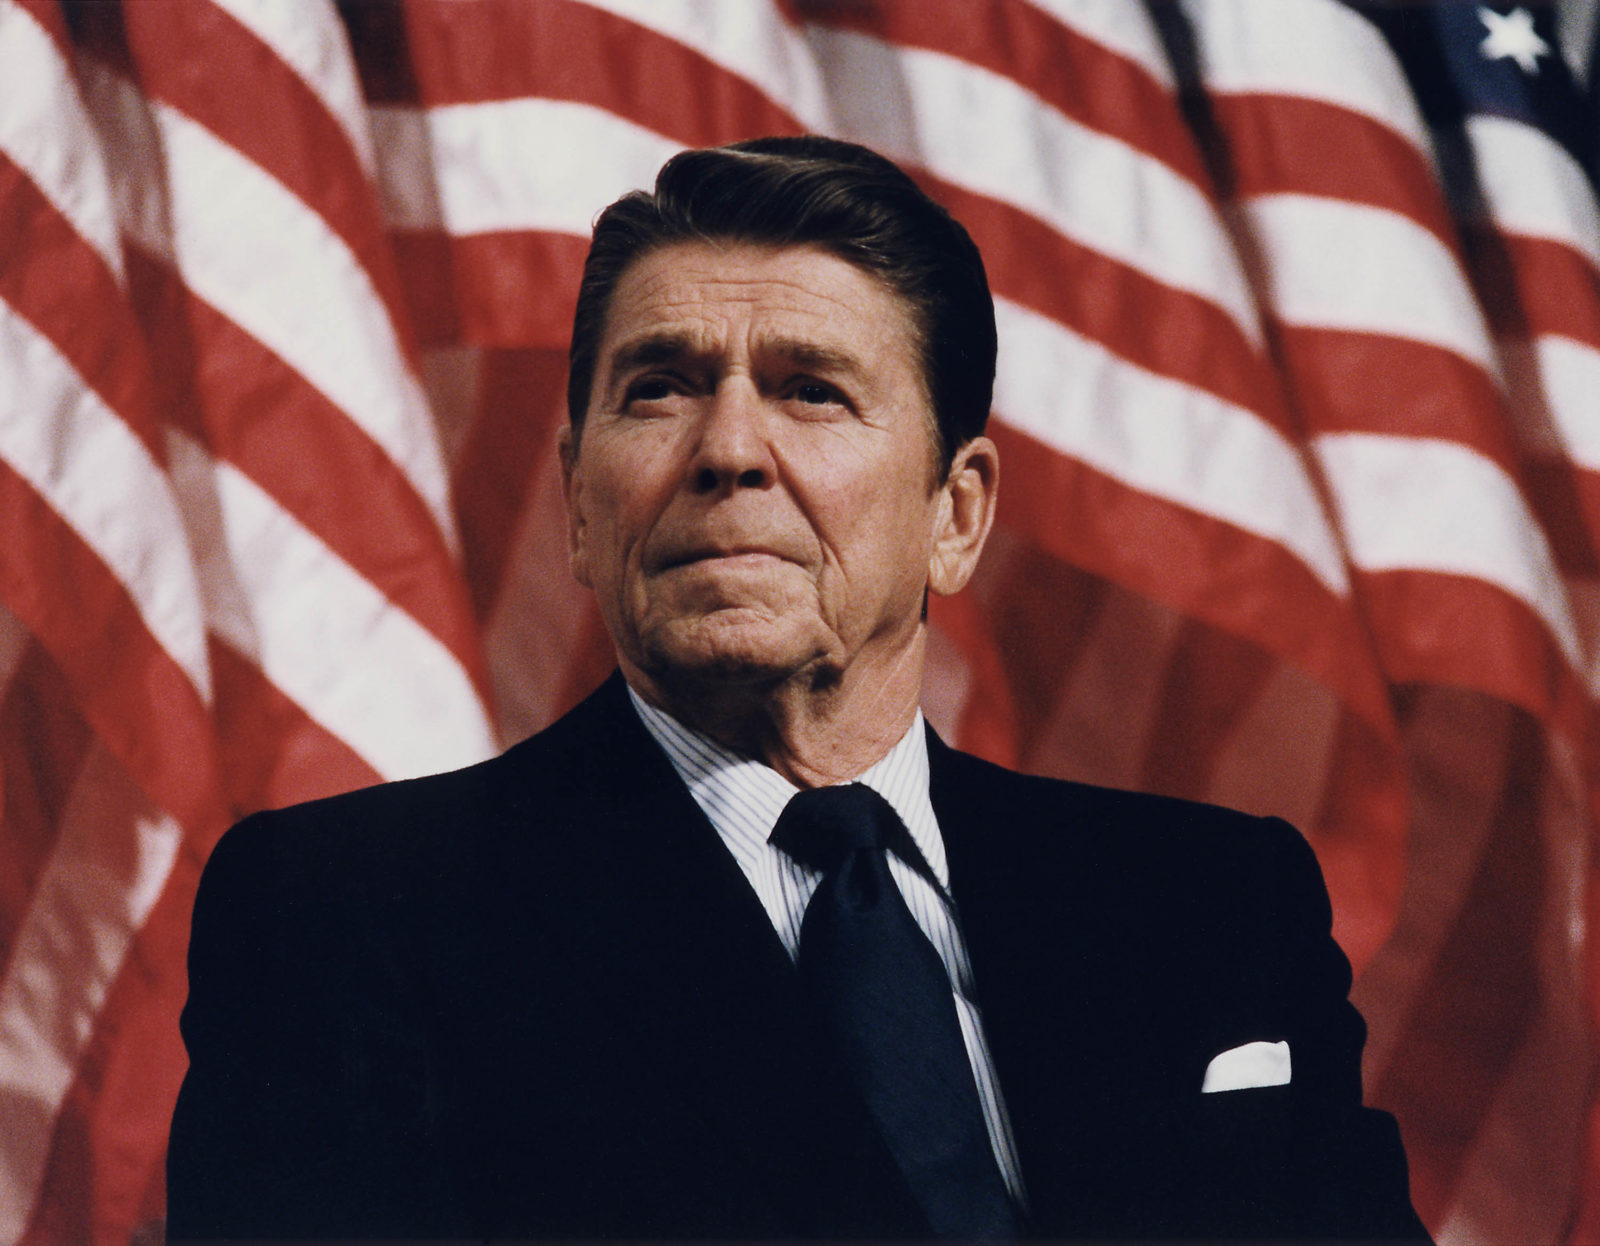 Was an Alien responsible for Reagan's presidency?